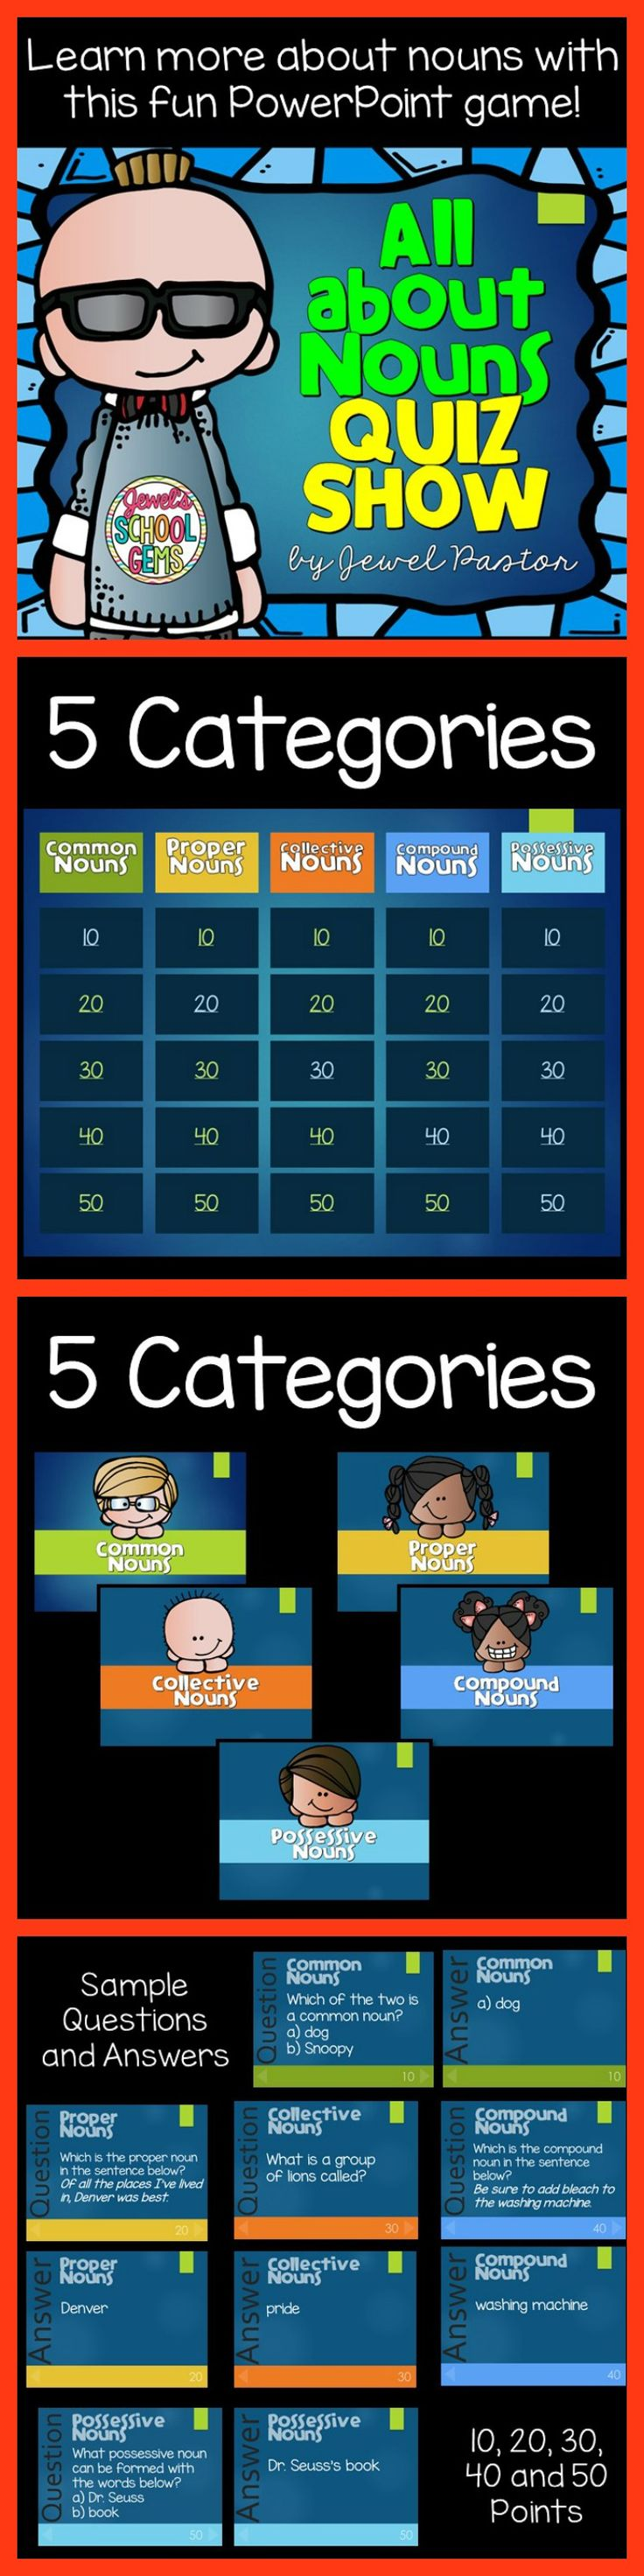 "NOUNS: ALL ABOUT NOUNS QUIZ SHOW  ""ALL ABOUT NOUNS QUIZ SHOW"" is a PowerPoint resource that can be used to test students' general knowledge or understanding of nouns before and after a lesson on nouns. This 61-page resource on nouns contains a cover, a categories and points board, 25 questions, 25 answers, credits and terms of use.  Students learn about nouns the fun way by using this PowerPoint resource. This resource can be used as a warm up, an icebreaker or a review activity."